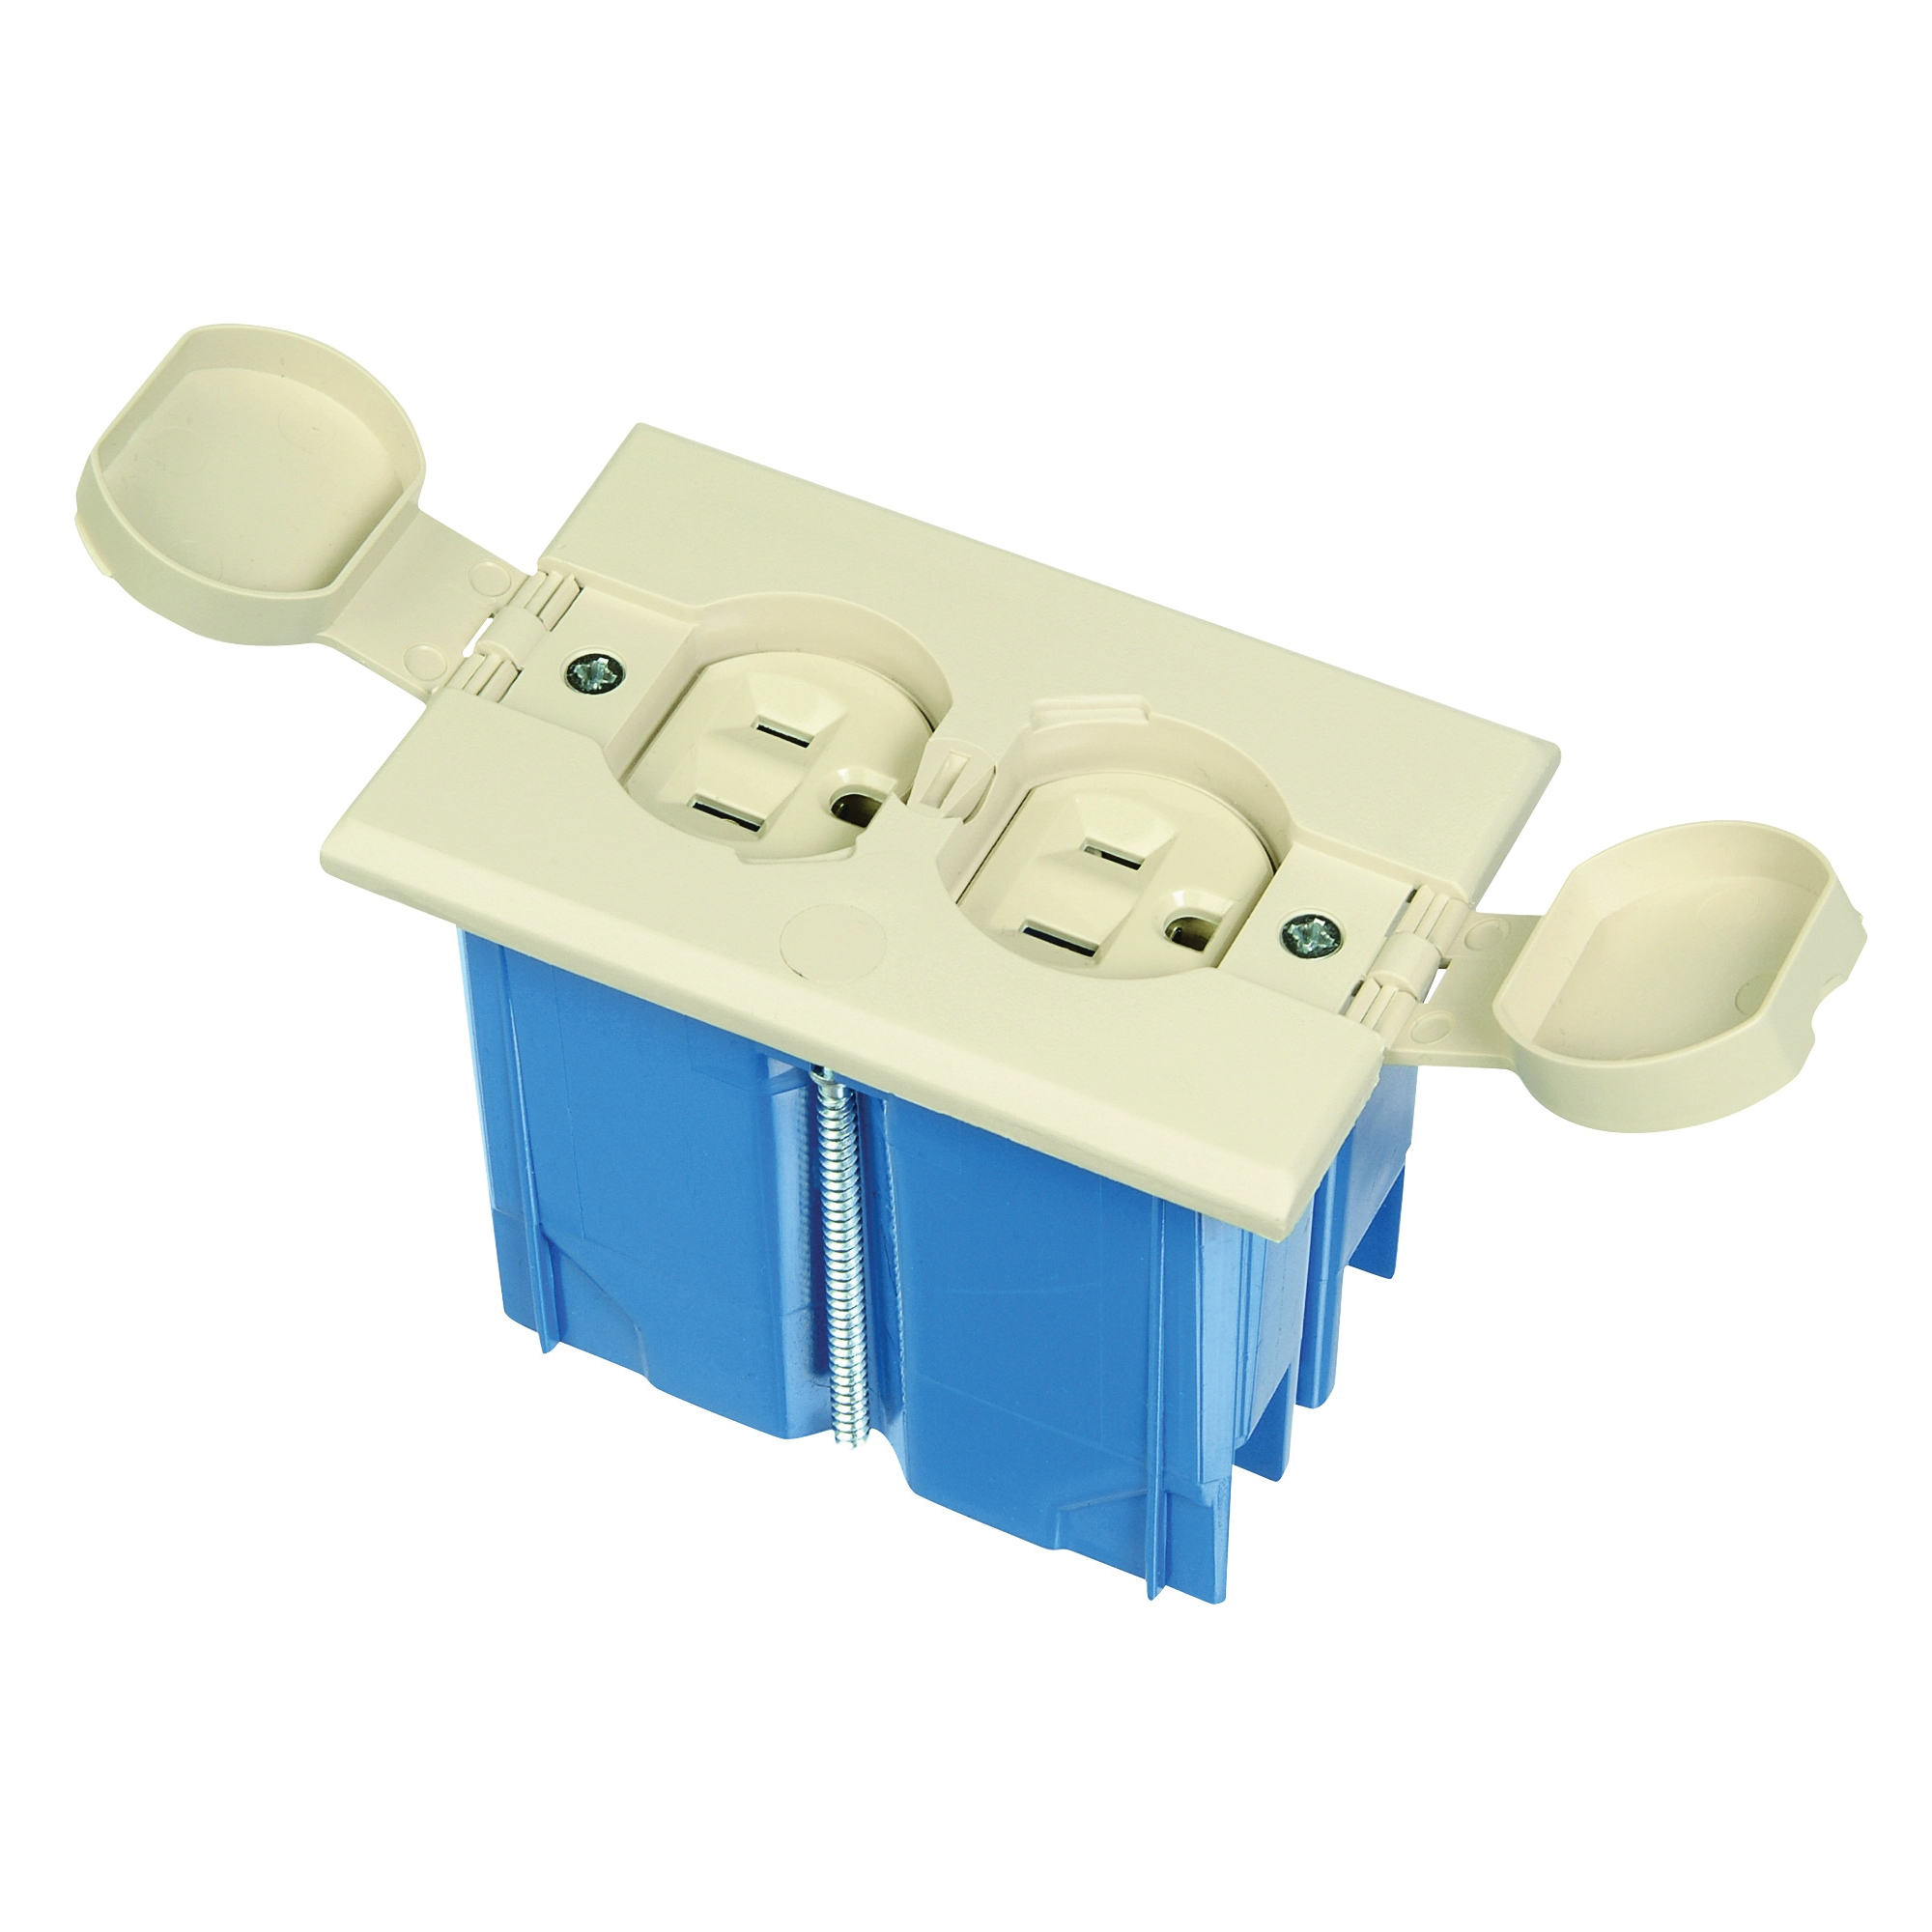 Picture of Carlon B121BFBRR Floor Box Kit, 4.36 in W, 2.24 in D, 3.33 in H, 1-Gang, Non-Metallic Box, Ivory